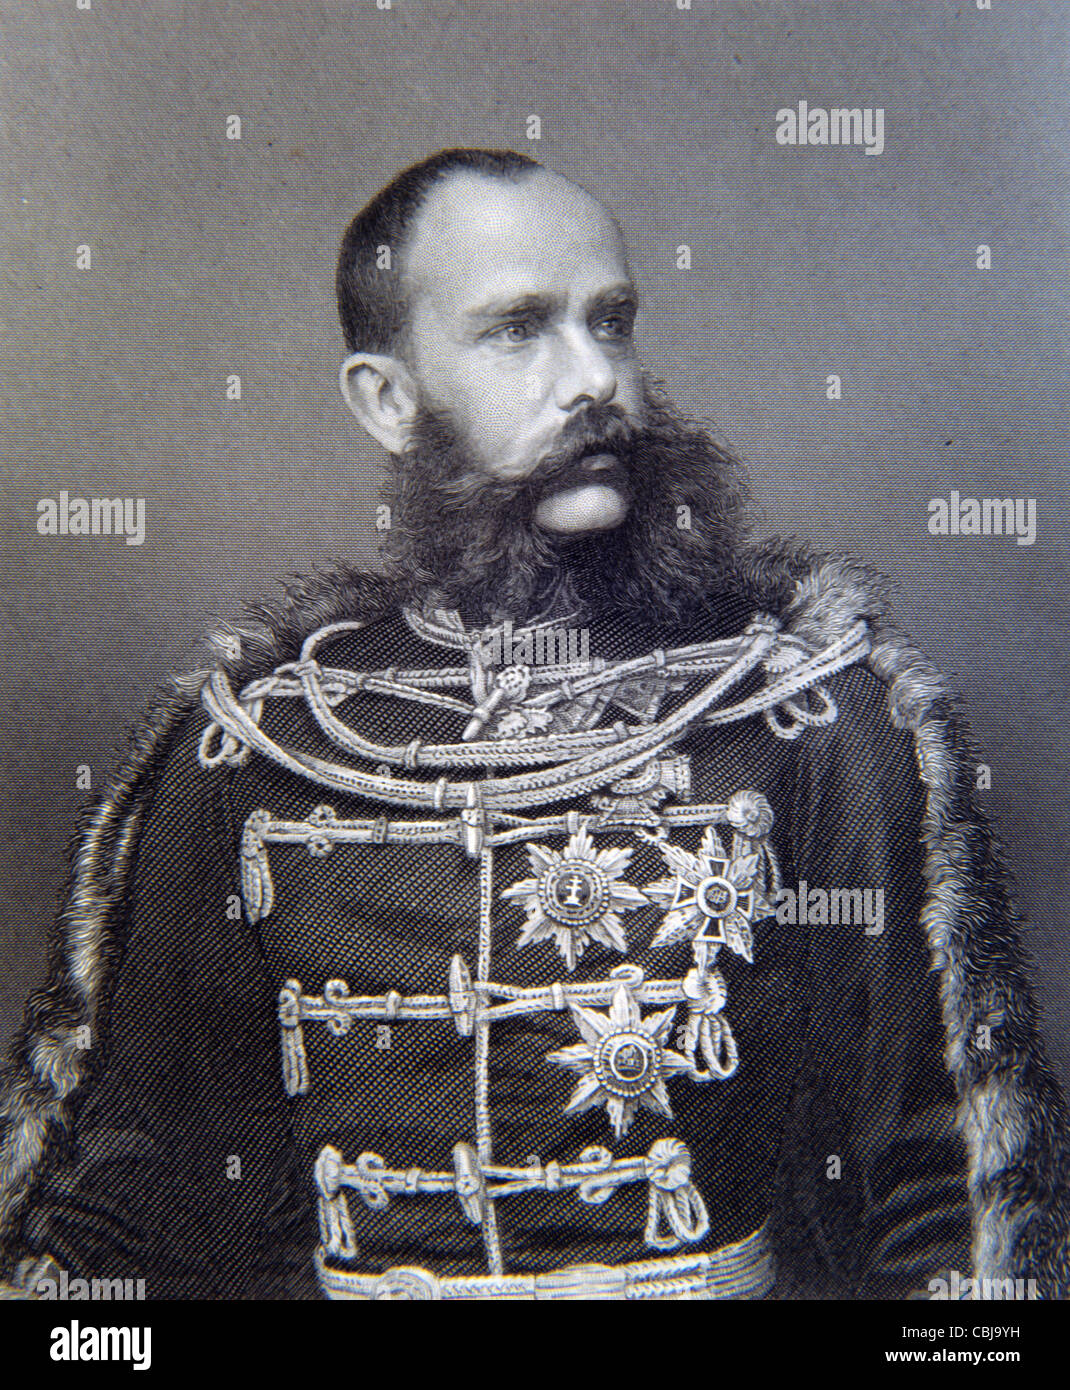 Franz Joseph I or Francis Joseph I, Emperor of Austria (1848-1916) and King of Hungary (1867-1916) Portrait in Military - Stock Image